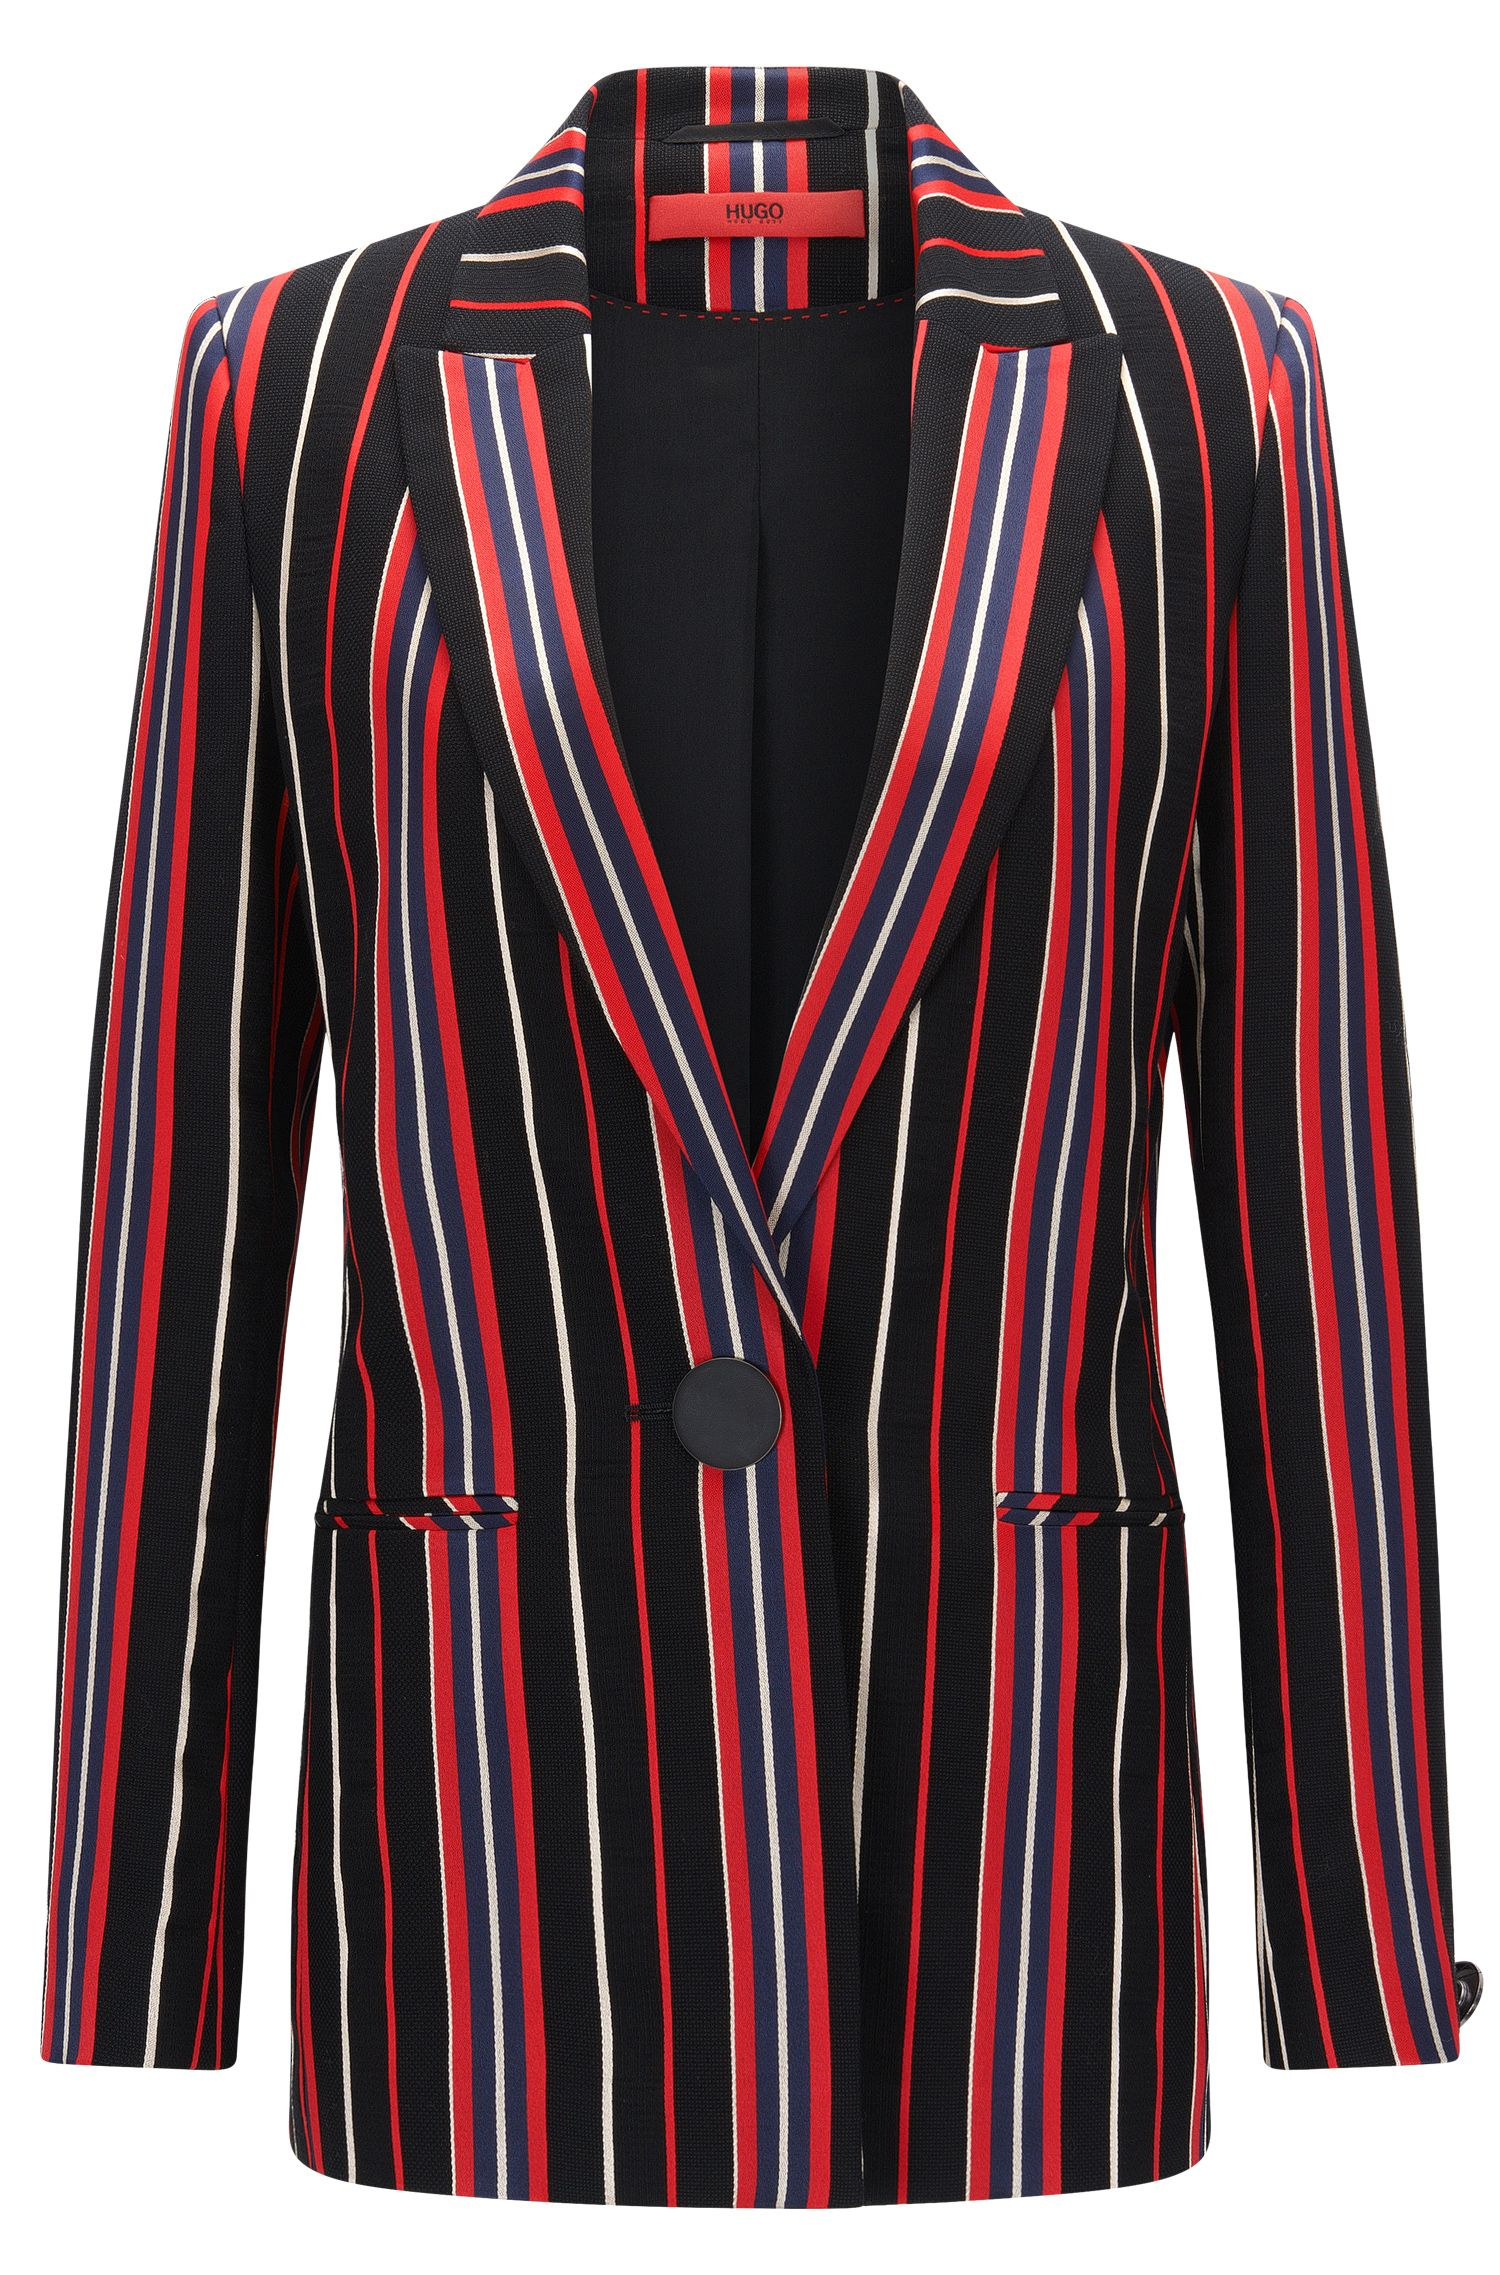 Regular-fit jacket in a striped cotton blend